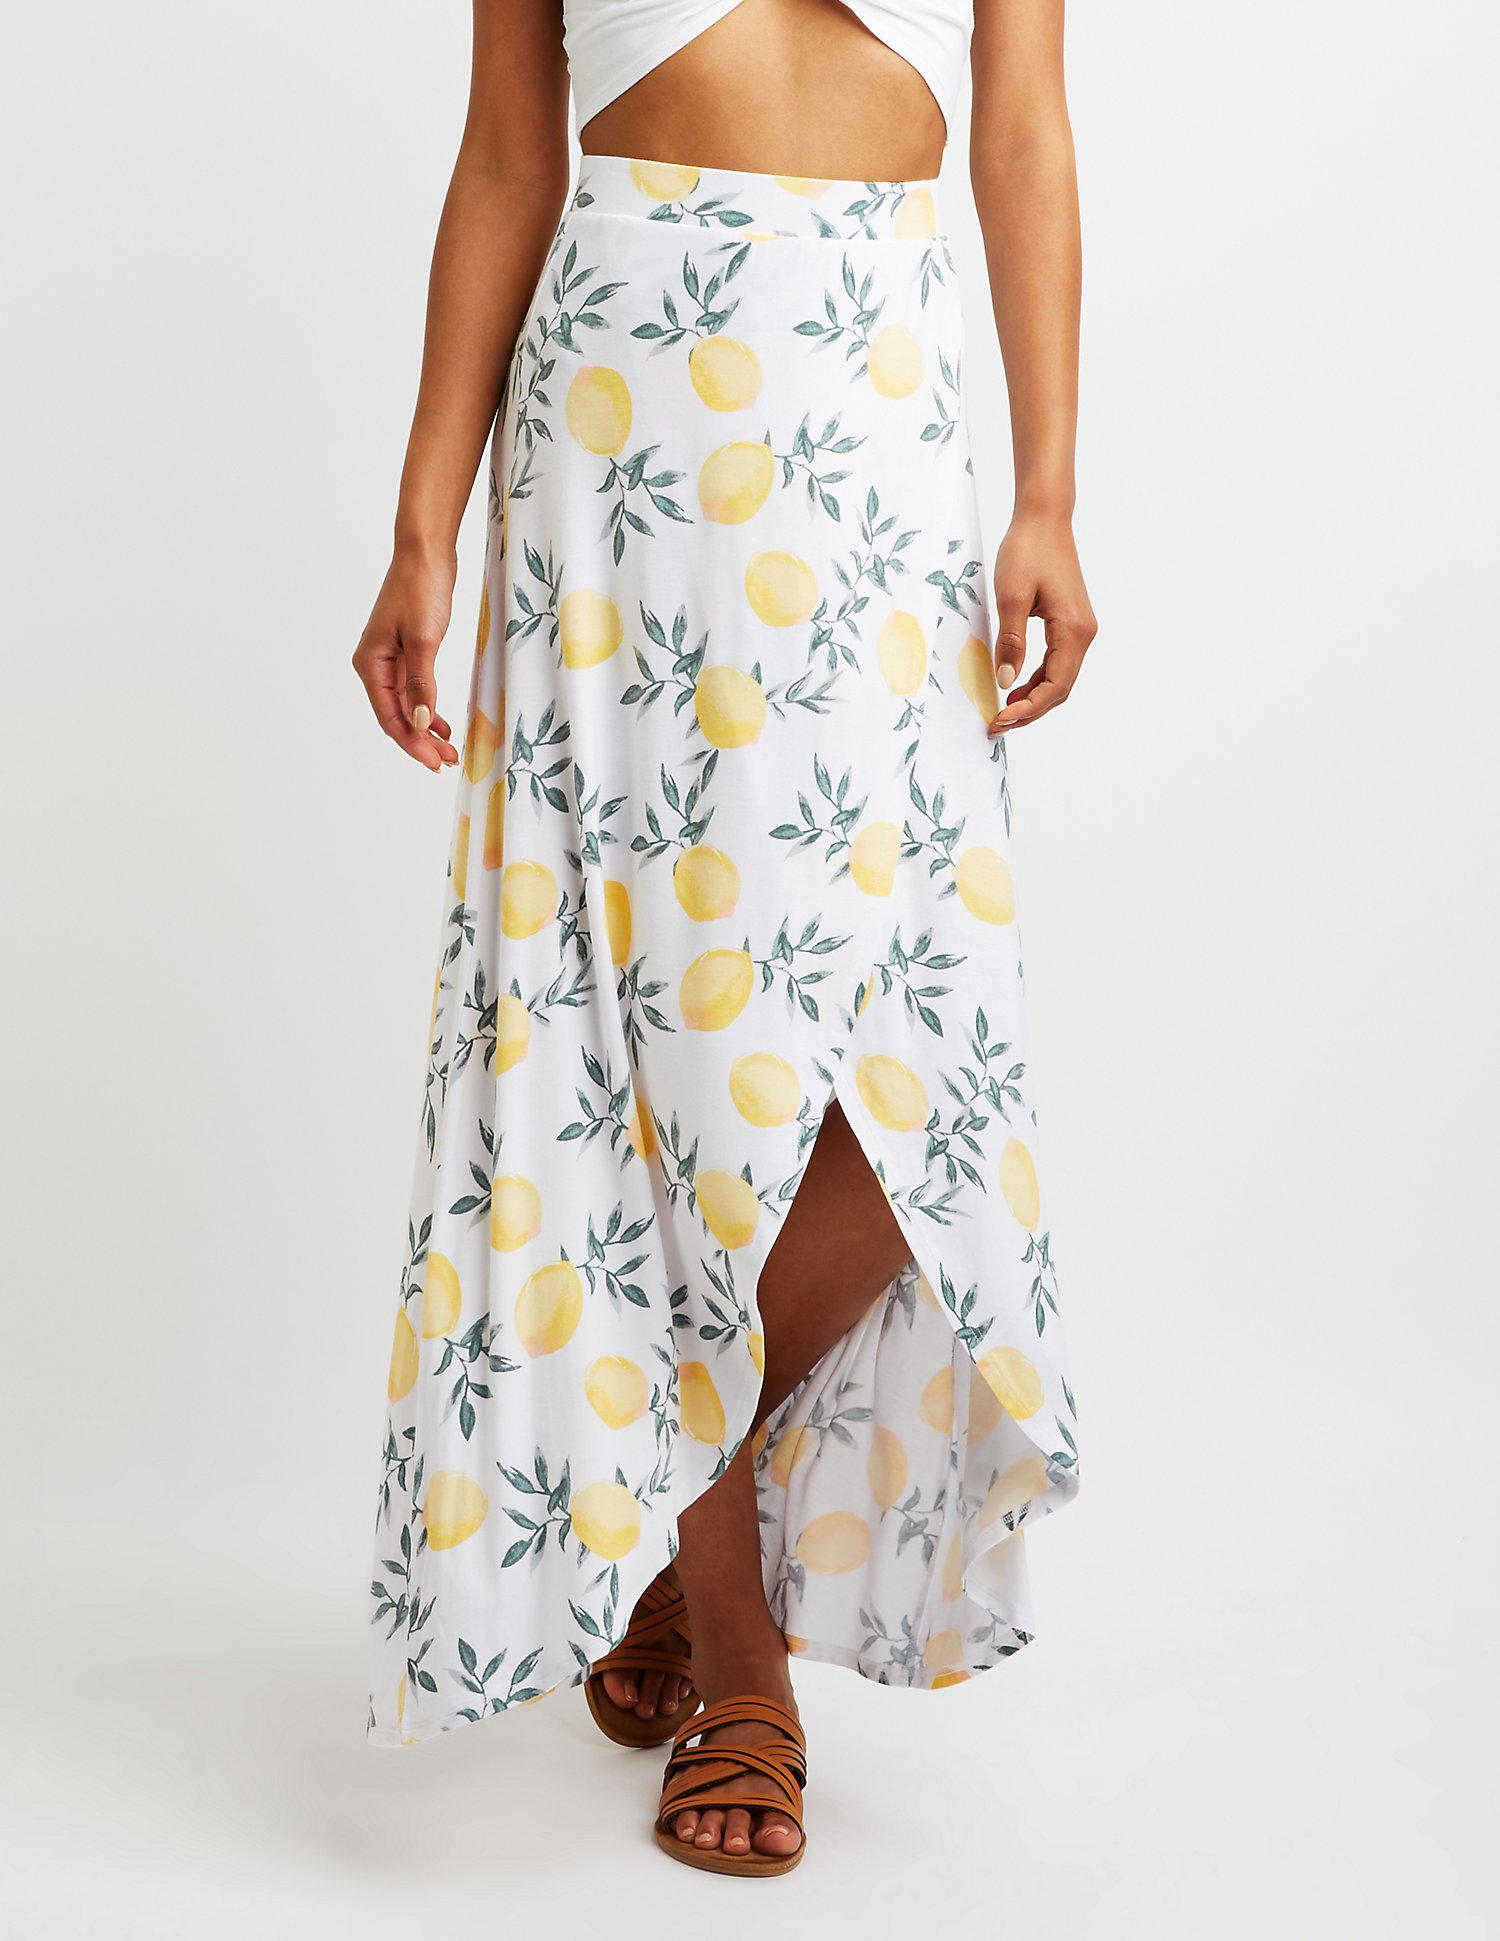 d82d54ecd Gallery. Previously sold at: Charlotte Russe · Women's Peacock Skirts ...